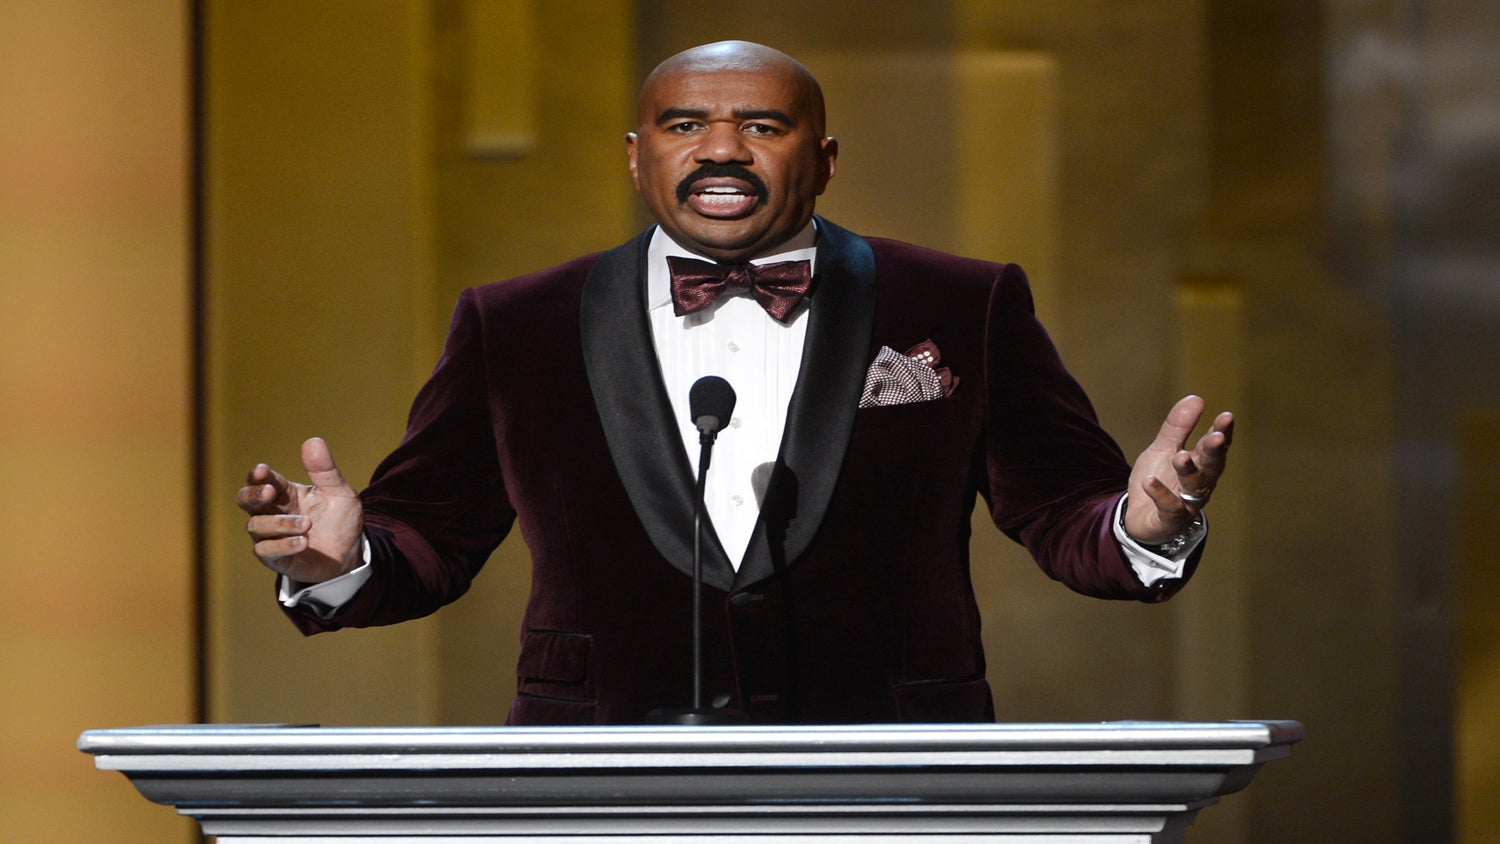 Steve Harvey on Success, Marriage and President Obama